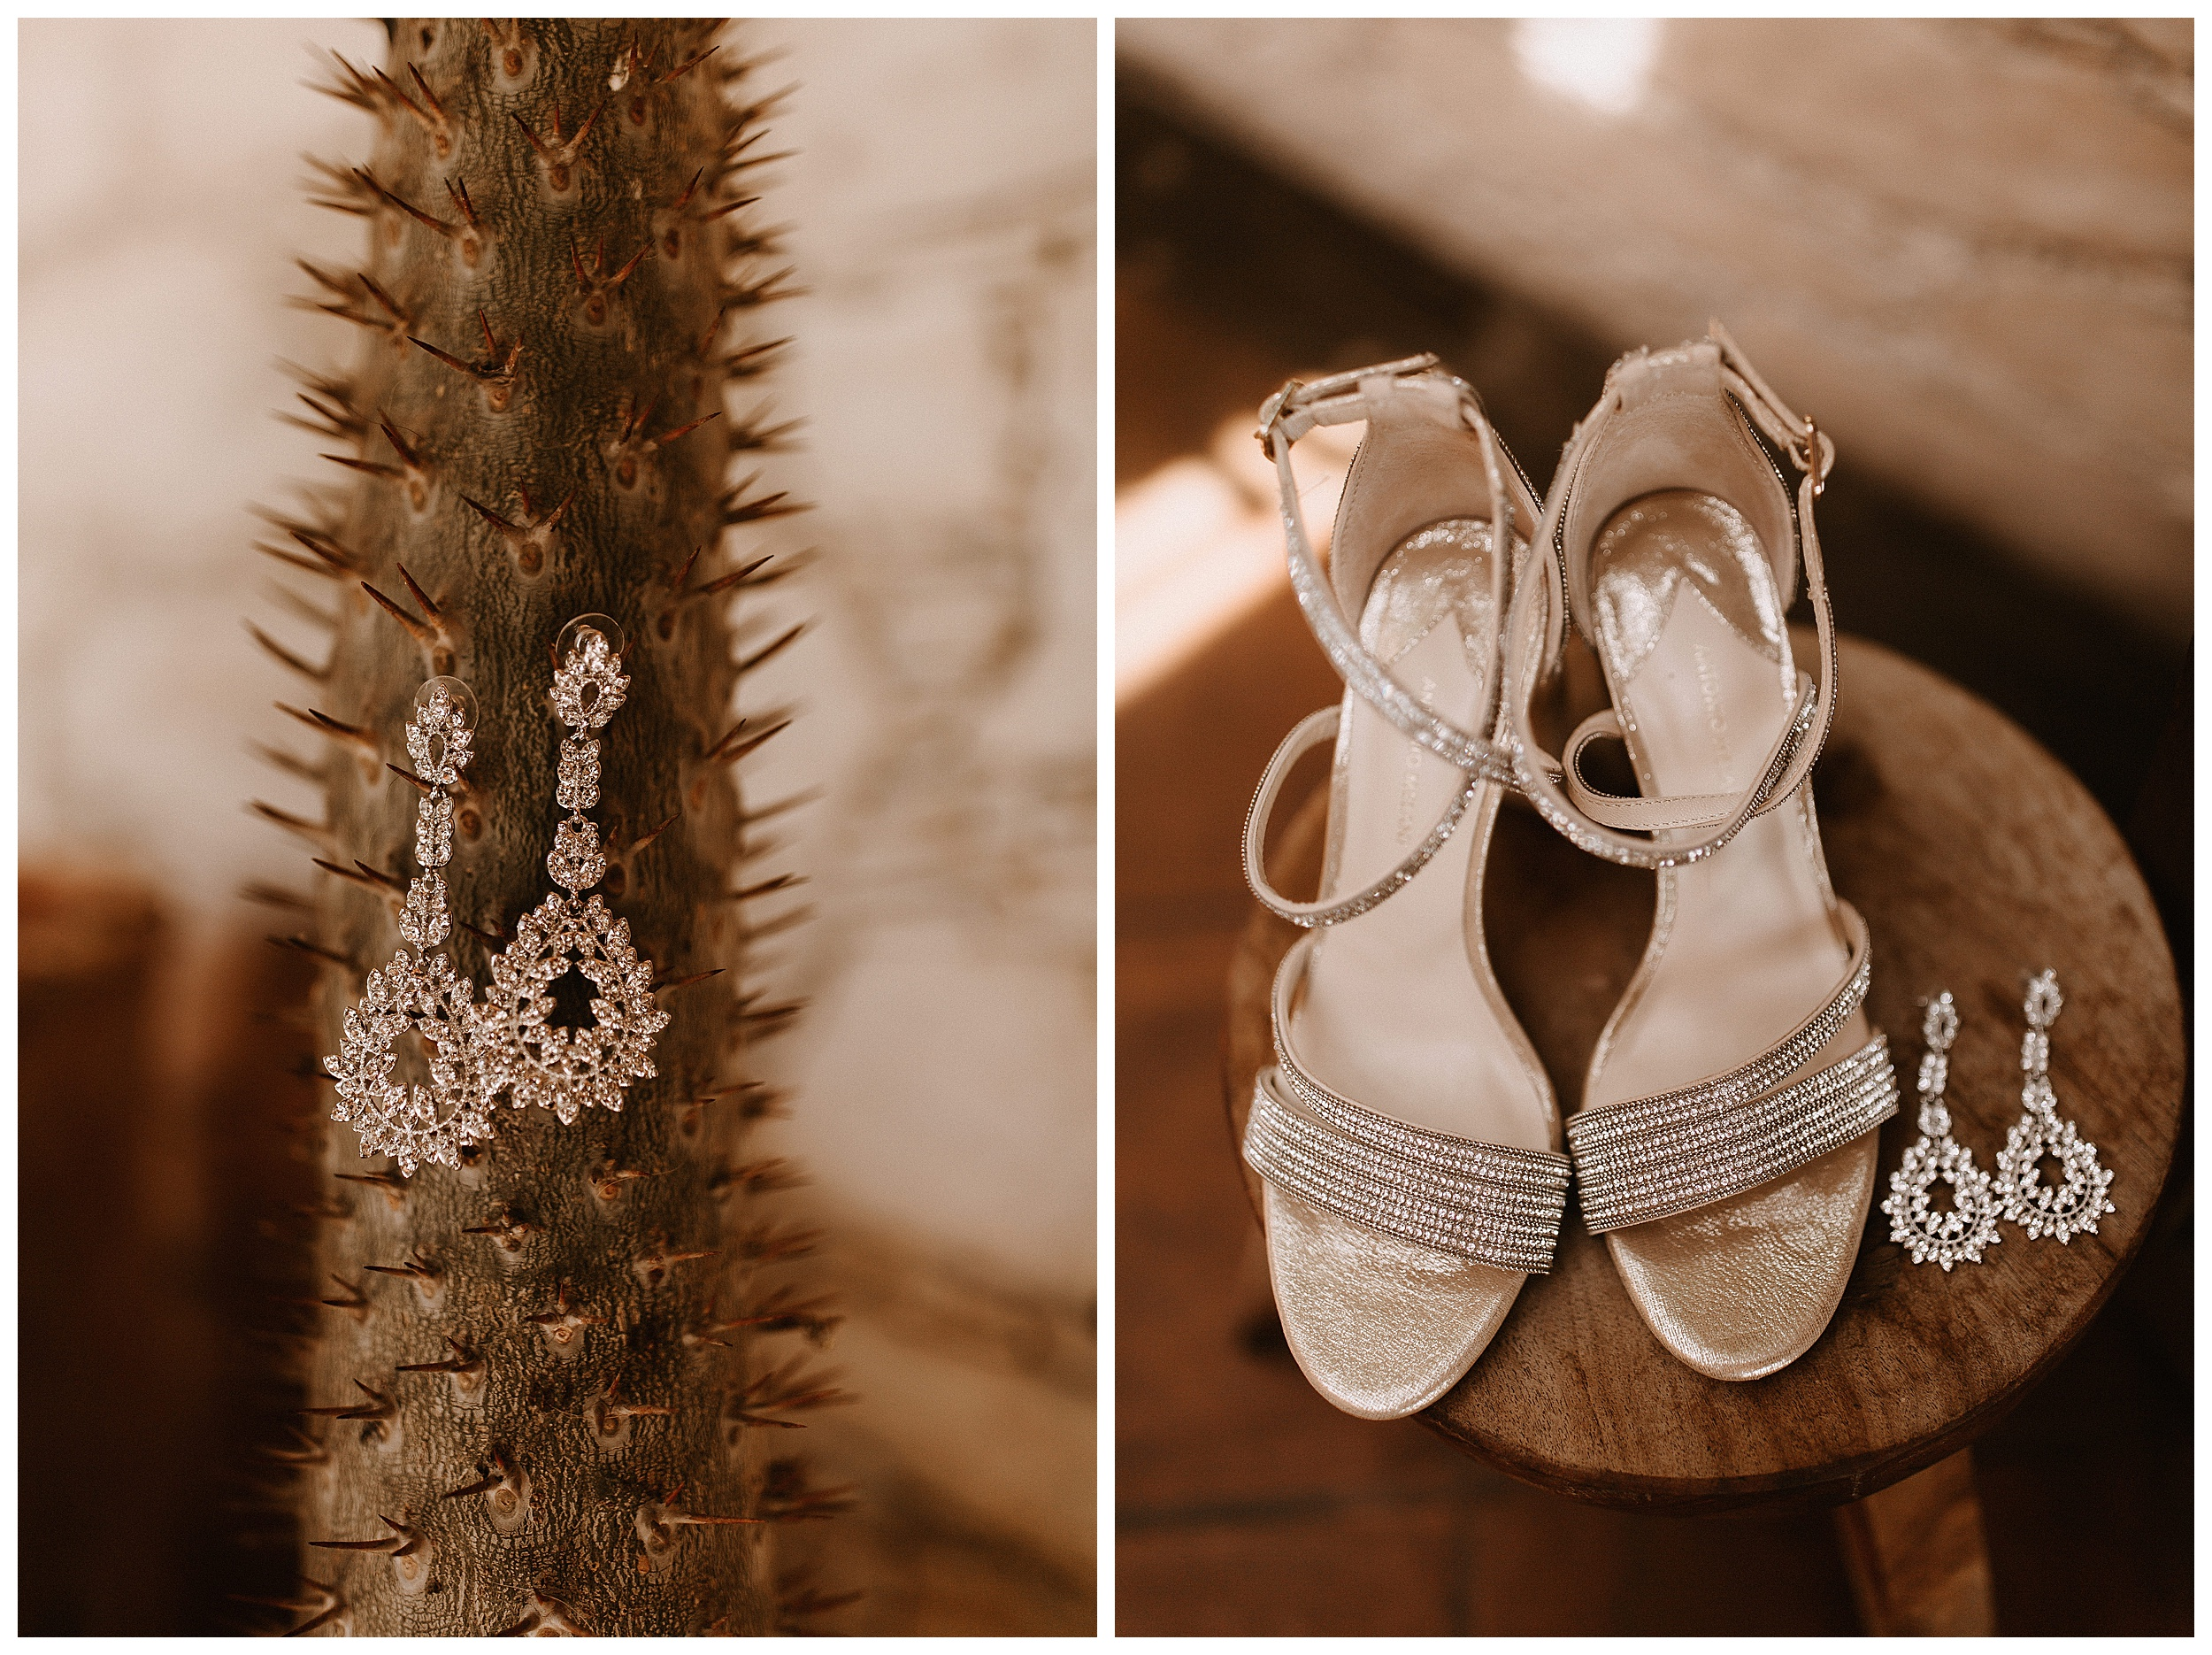 glittery bridal shoes and earrings